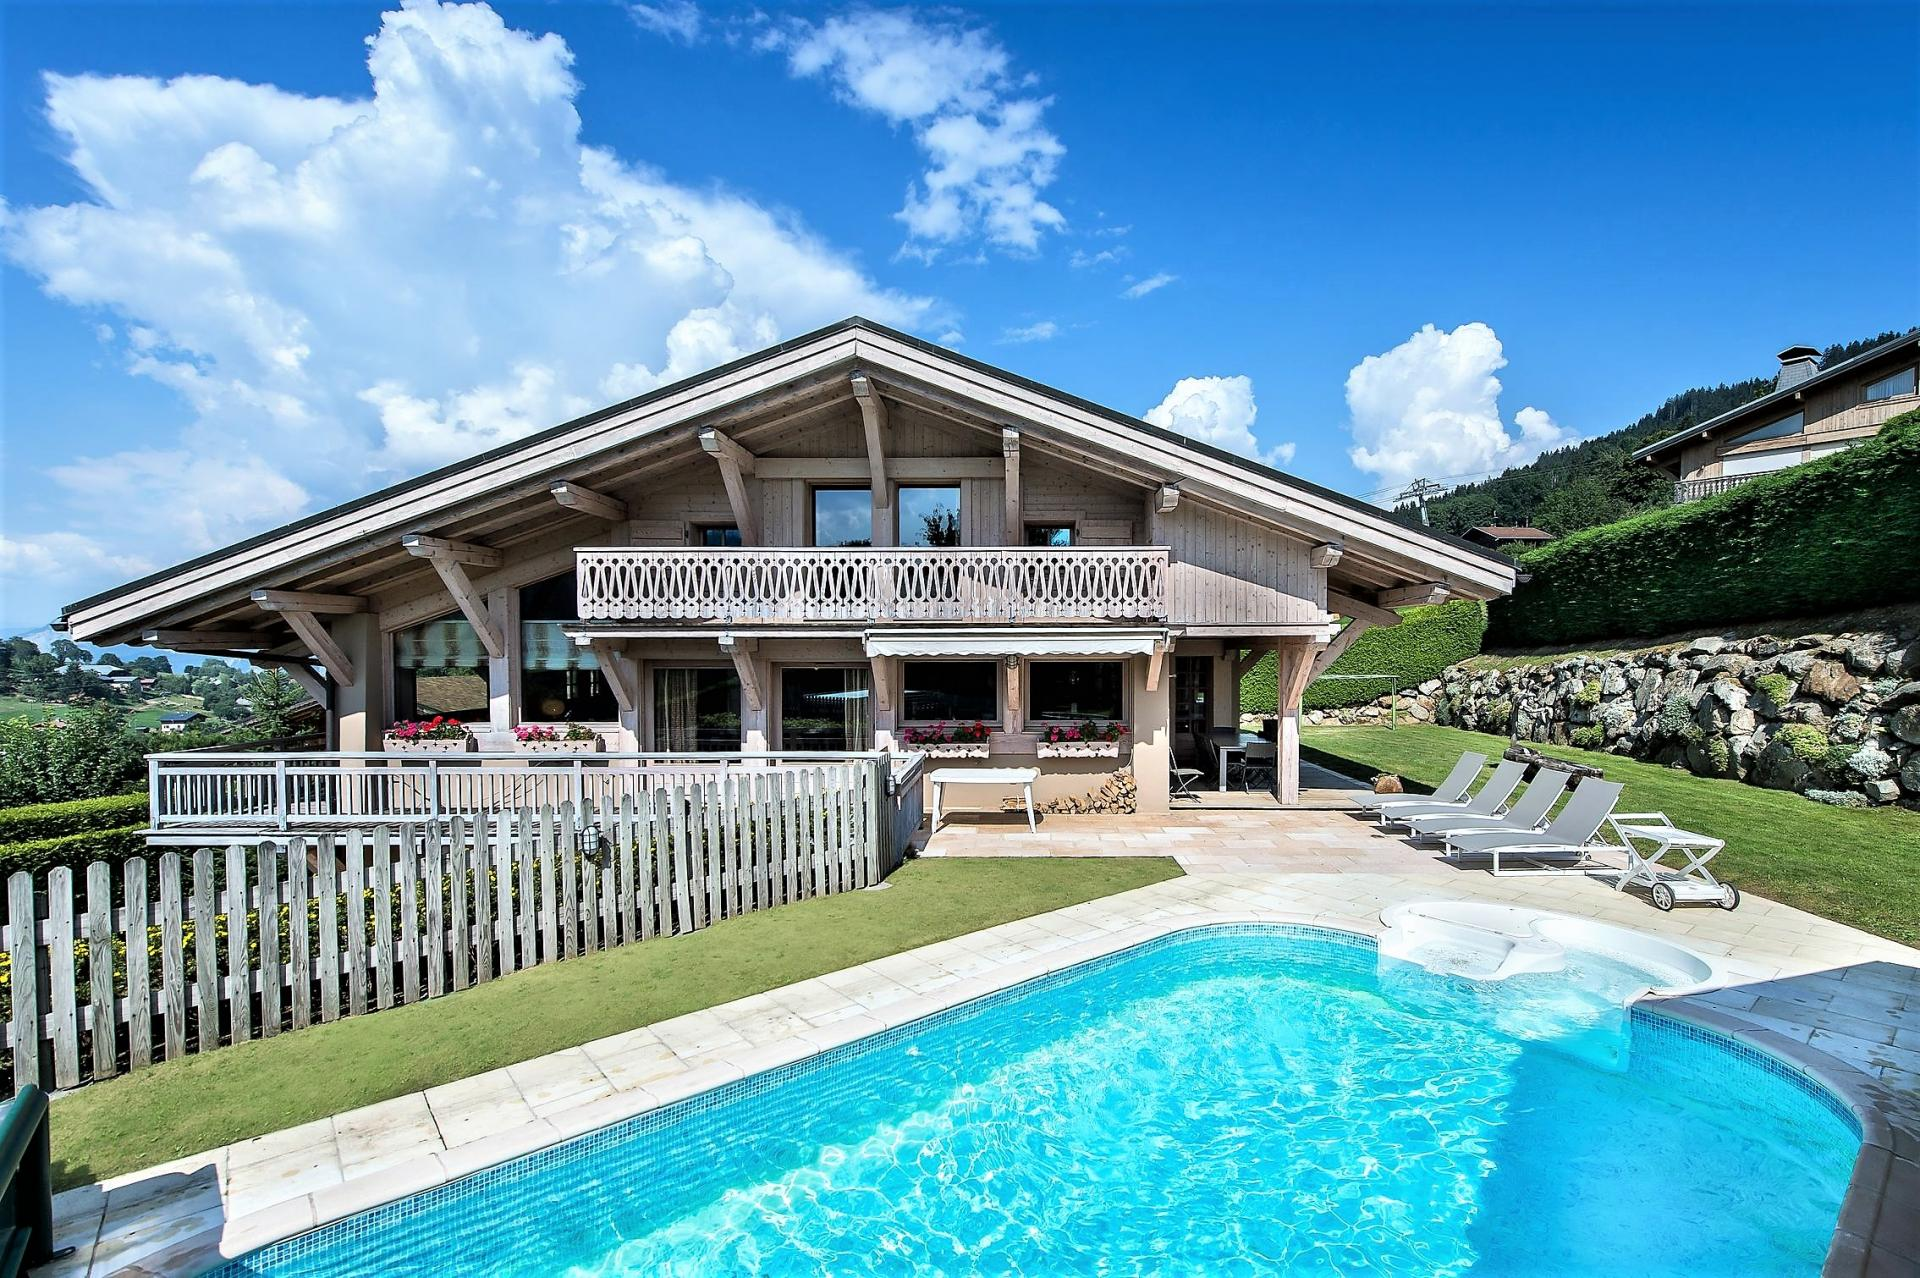 CHALET ARAVIS IS ALSO A SUMMER HOLIDAY RENTAL WITH ITS OUTDOOR SWIMMING POOL